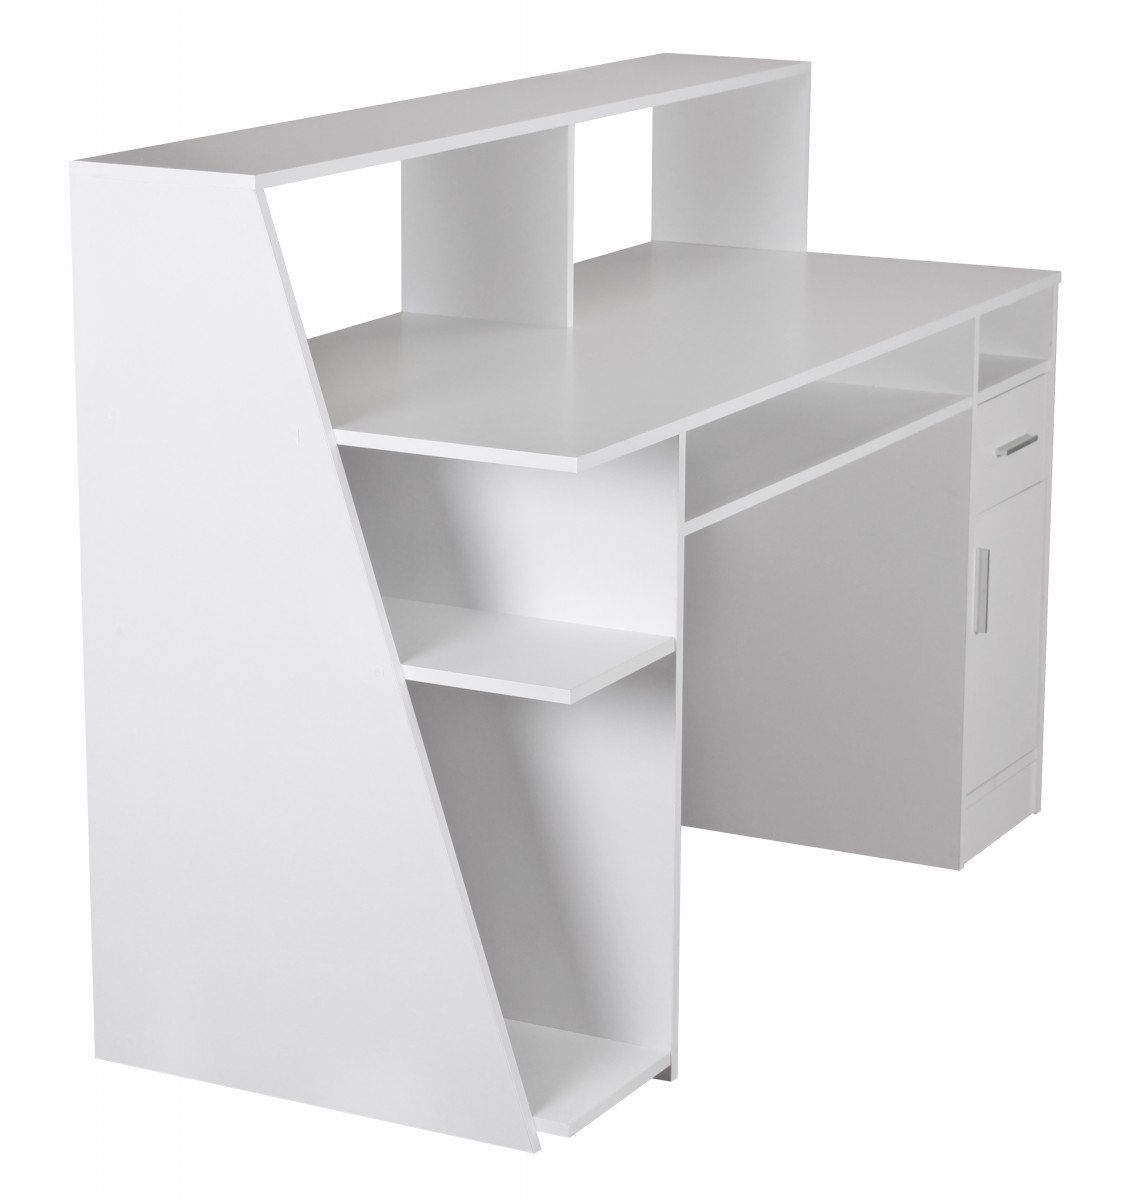 Kinderschreibtisch weiß  WOHNLING multifunctional design desk computer table white storage ...